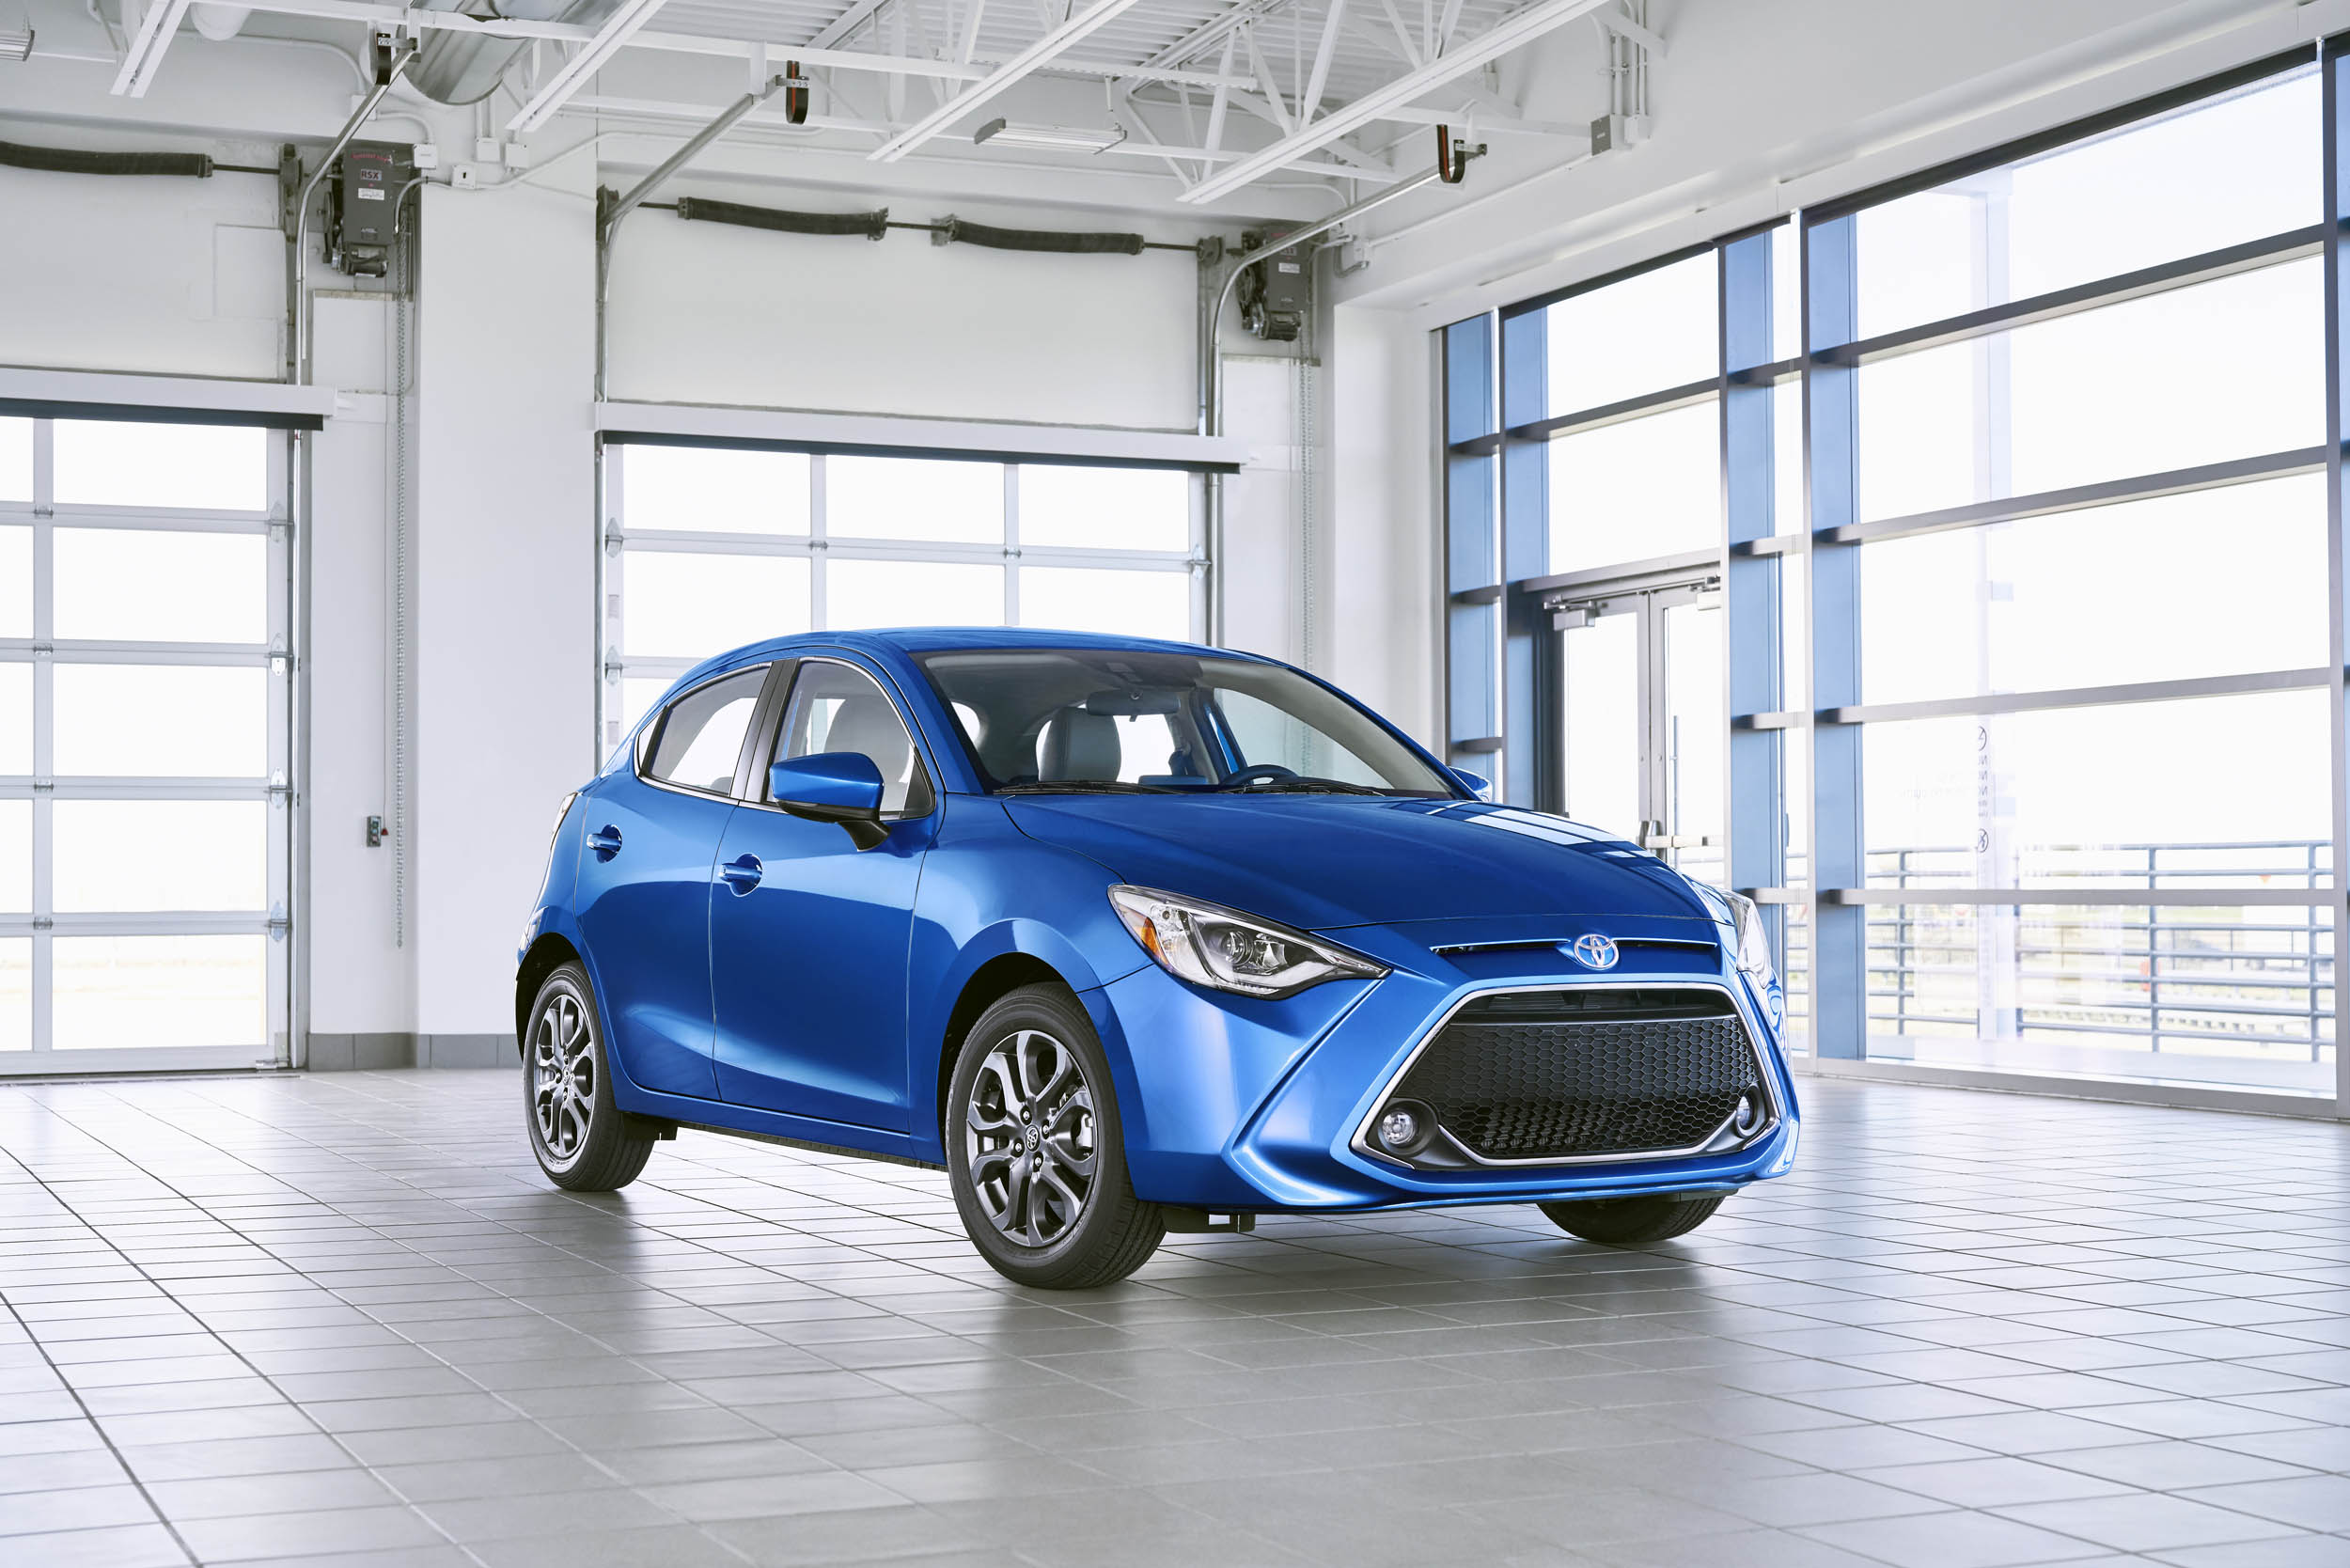 2020 Toyota Yaris Review, Ratings, Specs, Prices, and ...